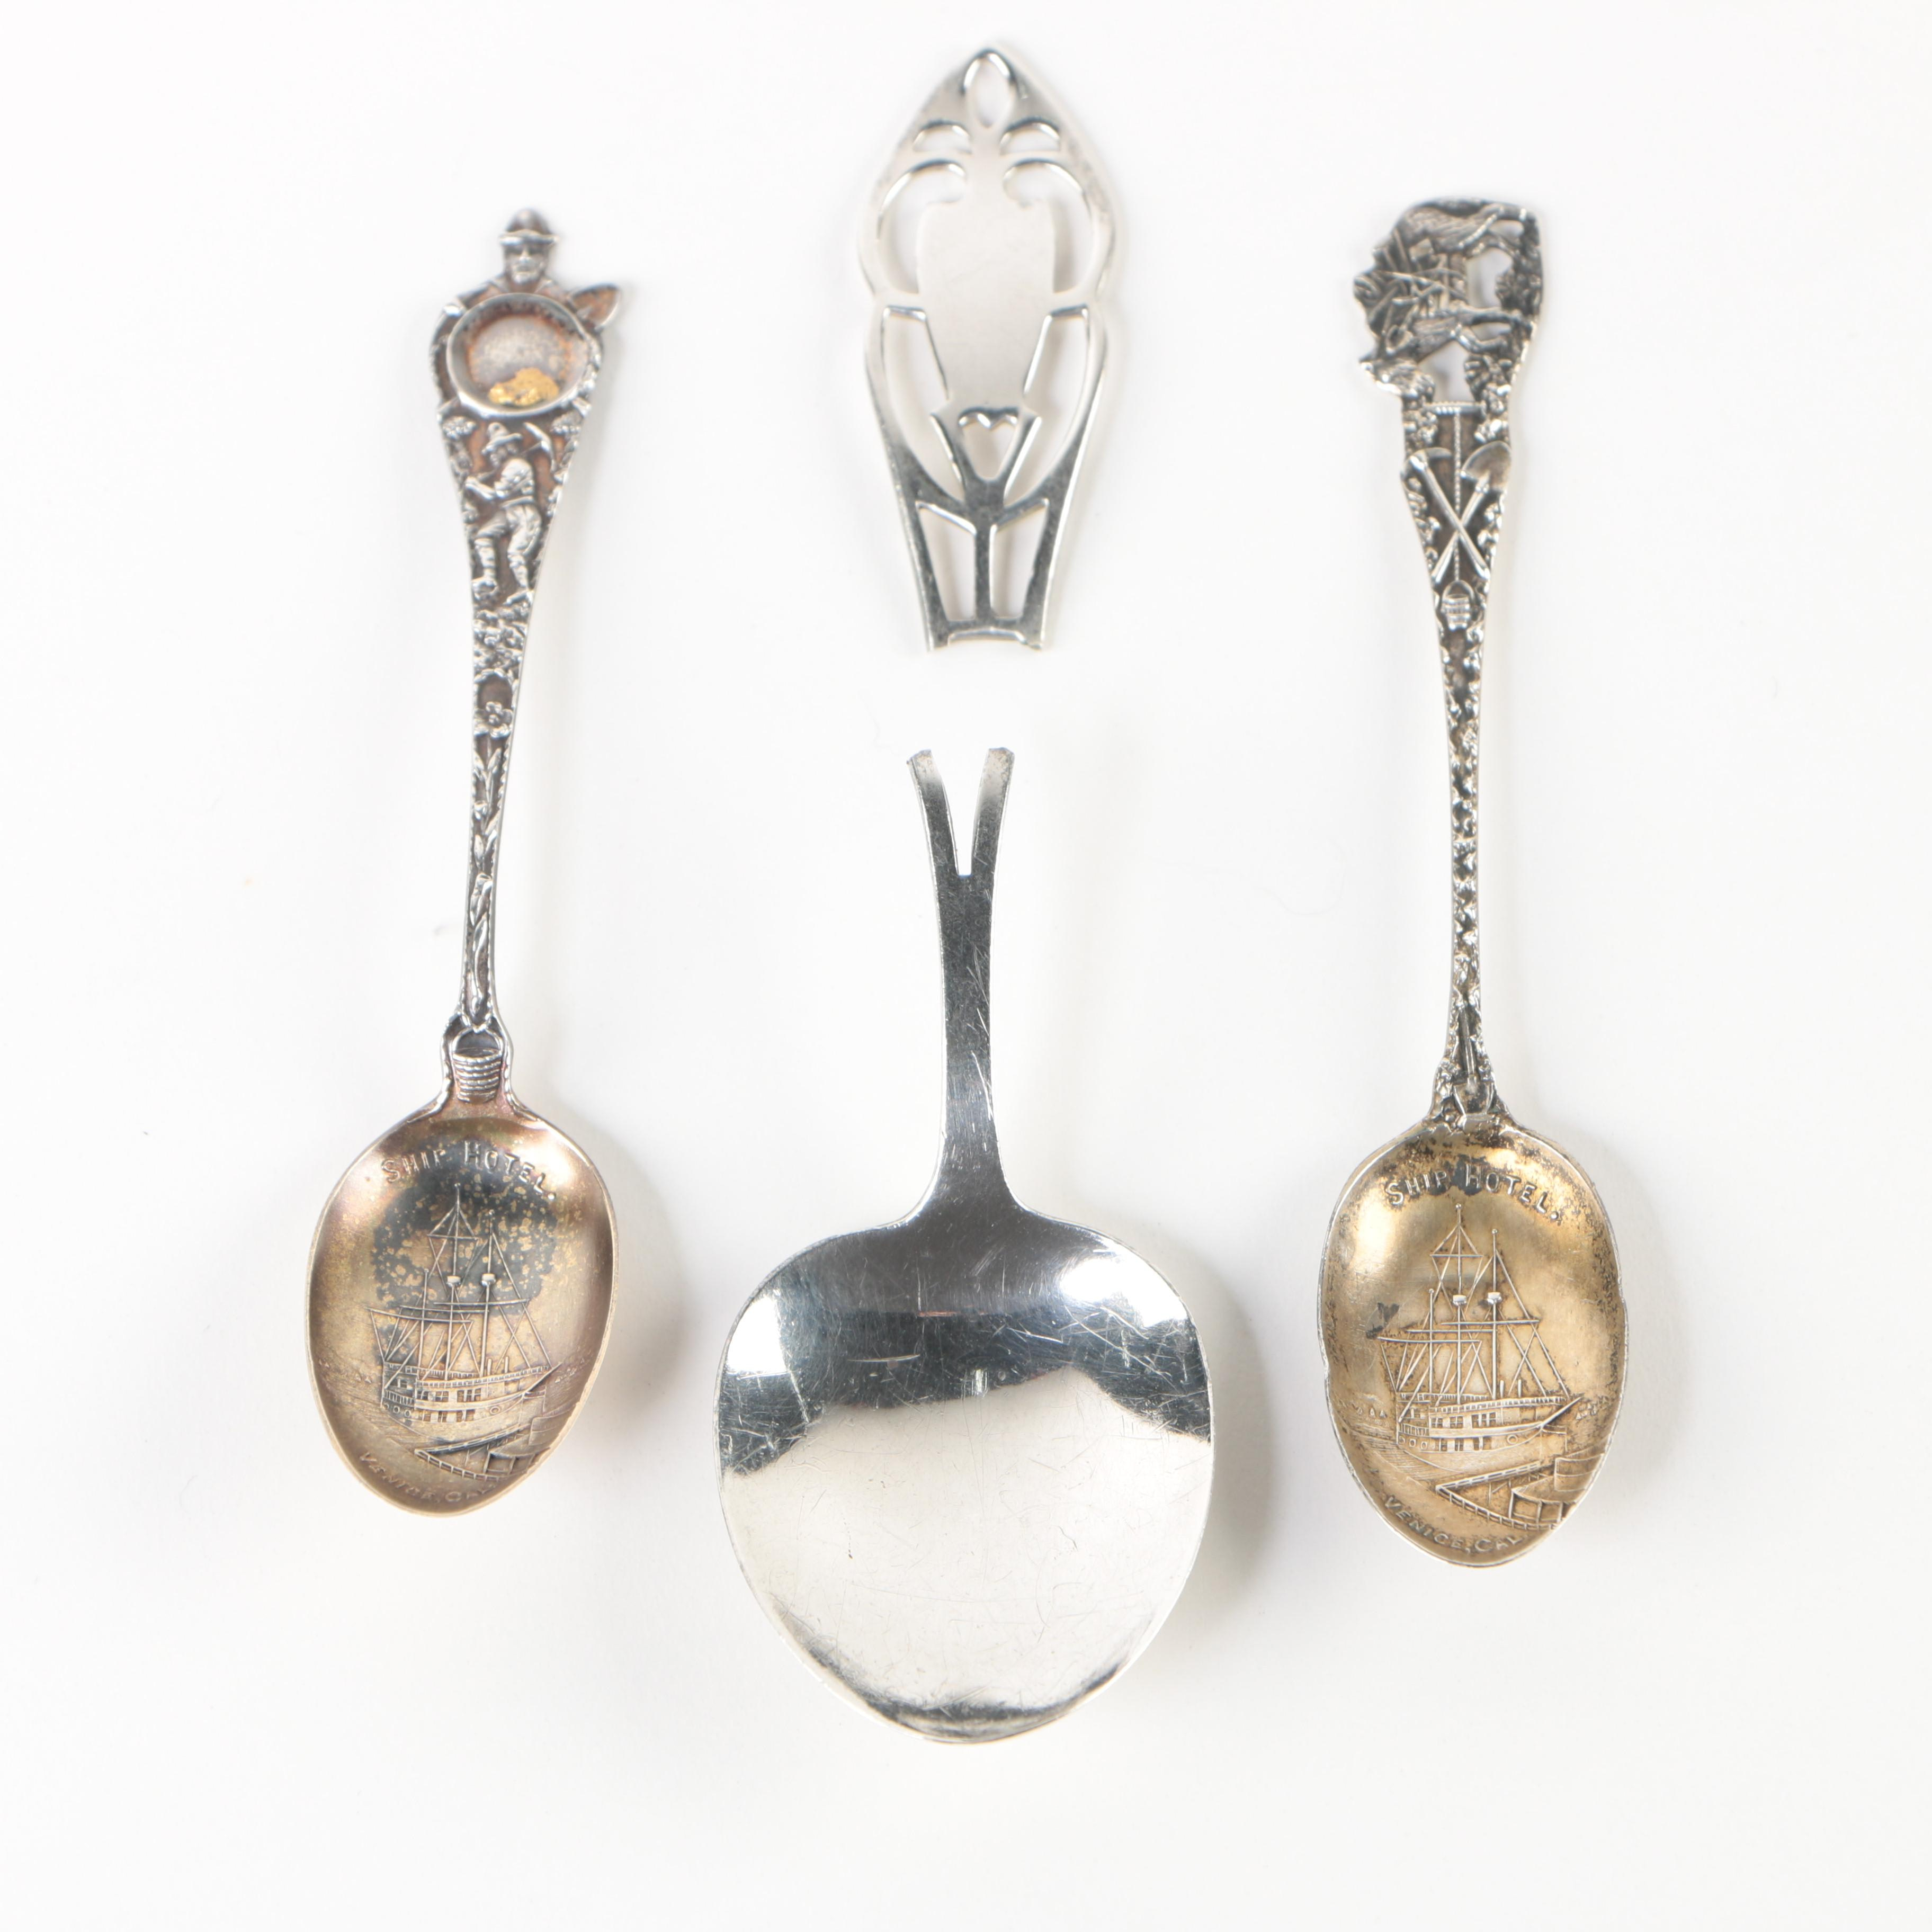 Weidlich Sterling Demitasse Spoon with Sterling California Souvenir Spoons